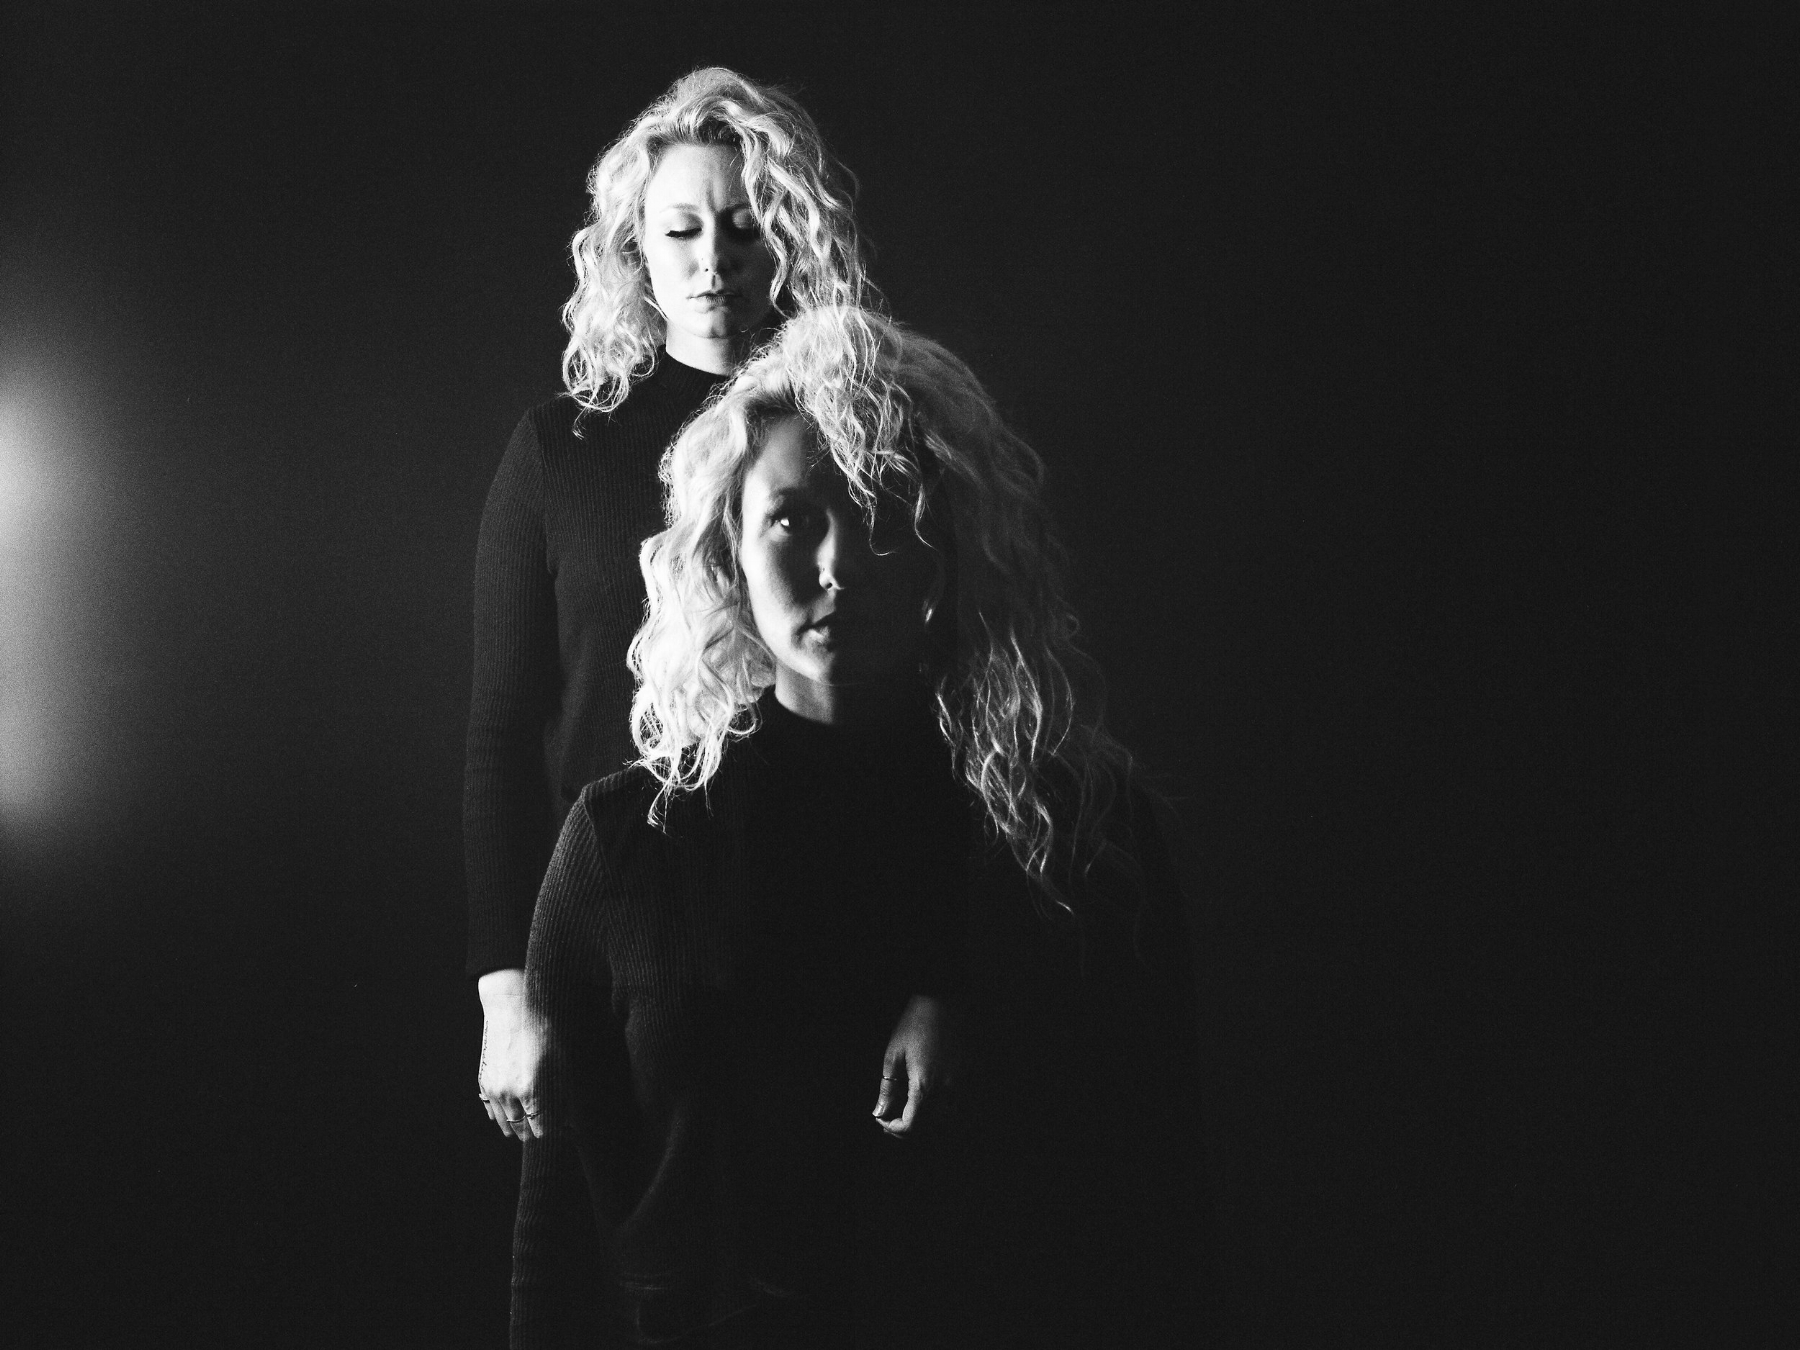 Image by  Lance Sherwood ; used with permission